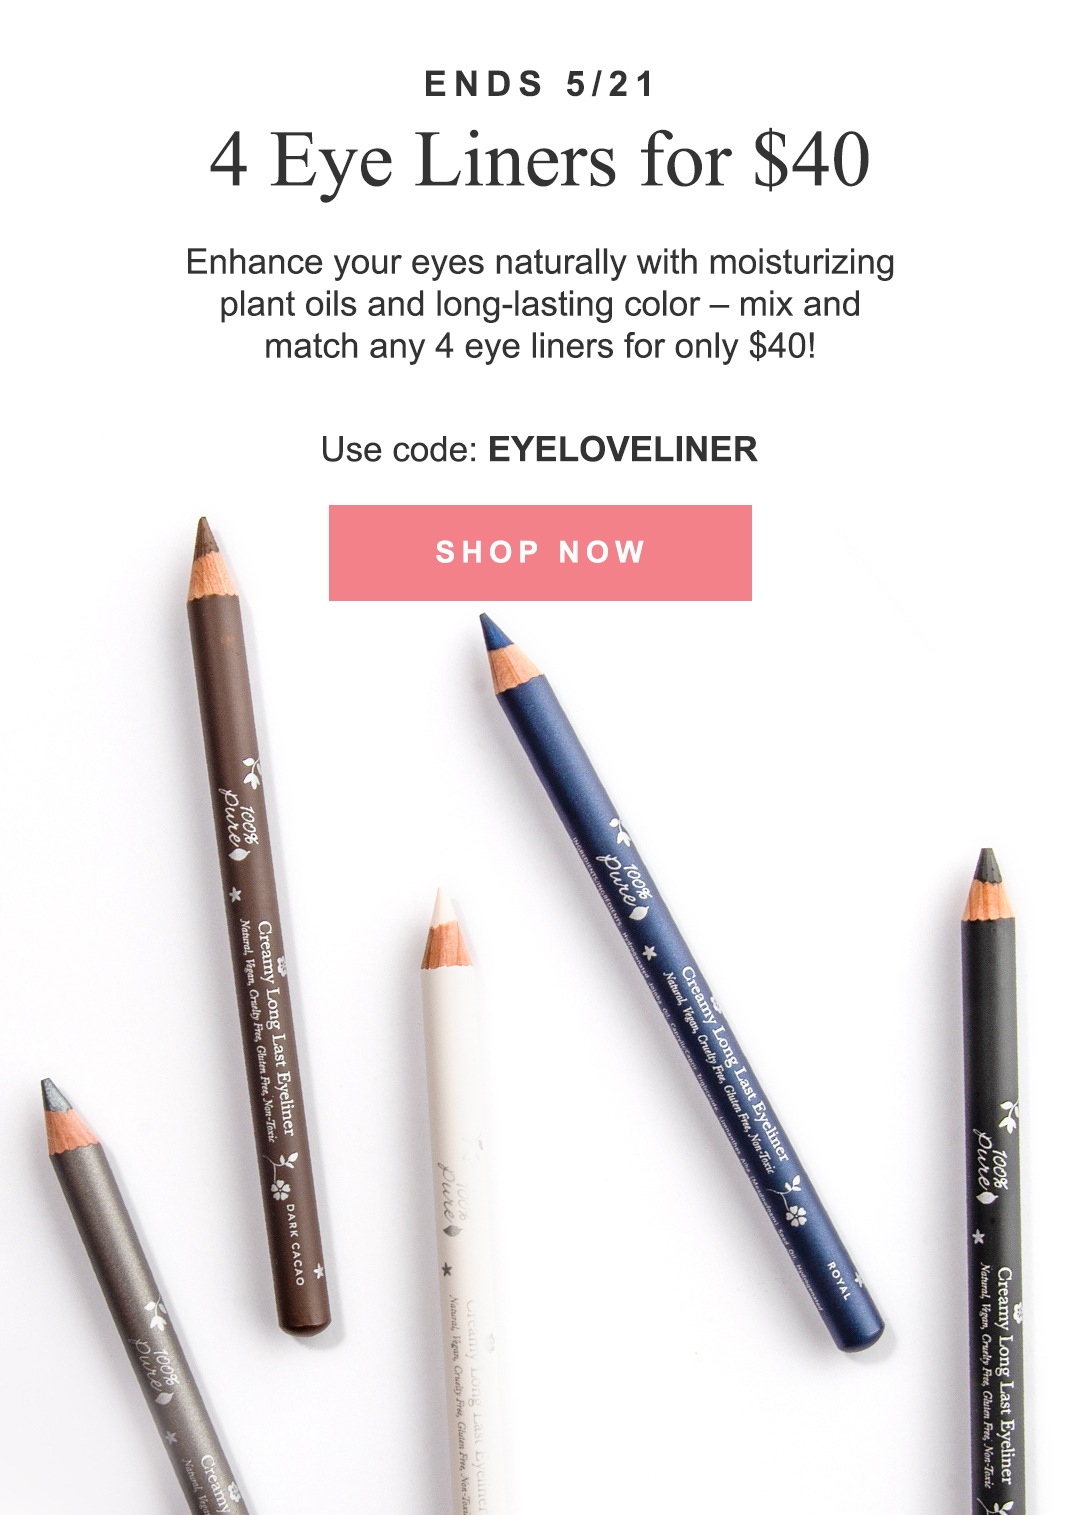 Enhance your eyes naturally with moisturizing plant oils and long-lasting color - mix and match any 4 eye liners for only $40!